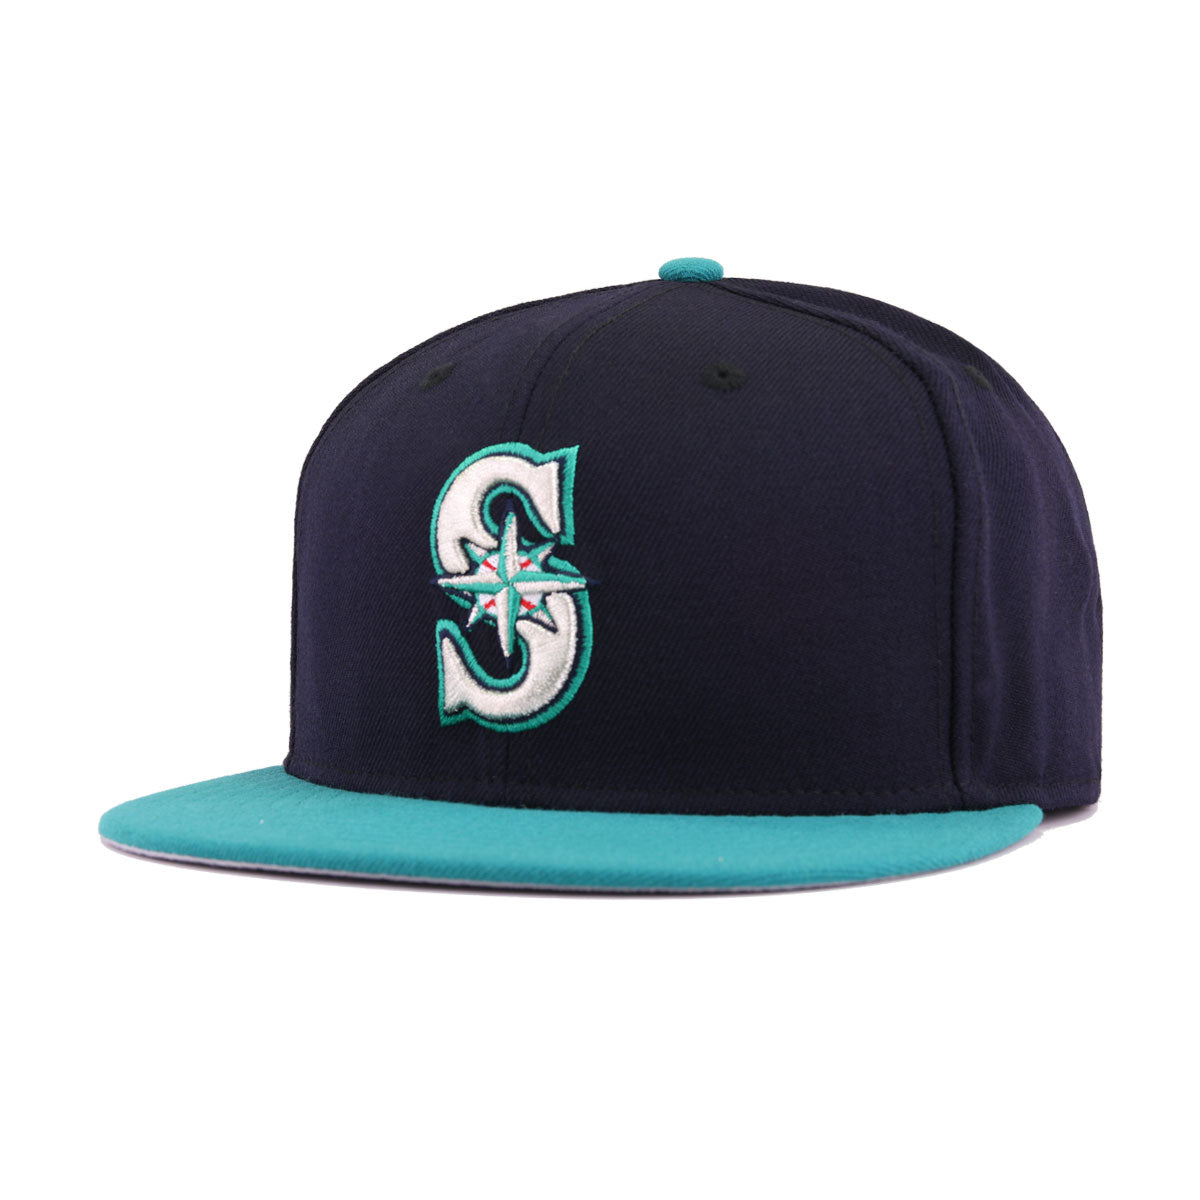 Metallic Gold Logos New Era 59Fifty Fitted Hat Seattle Mariners Red Navy Lid